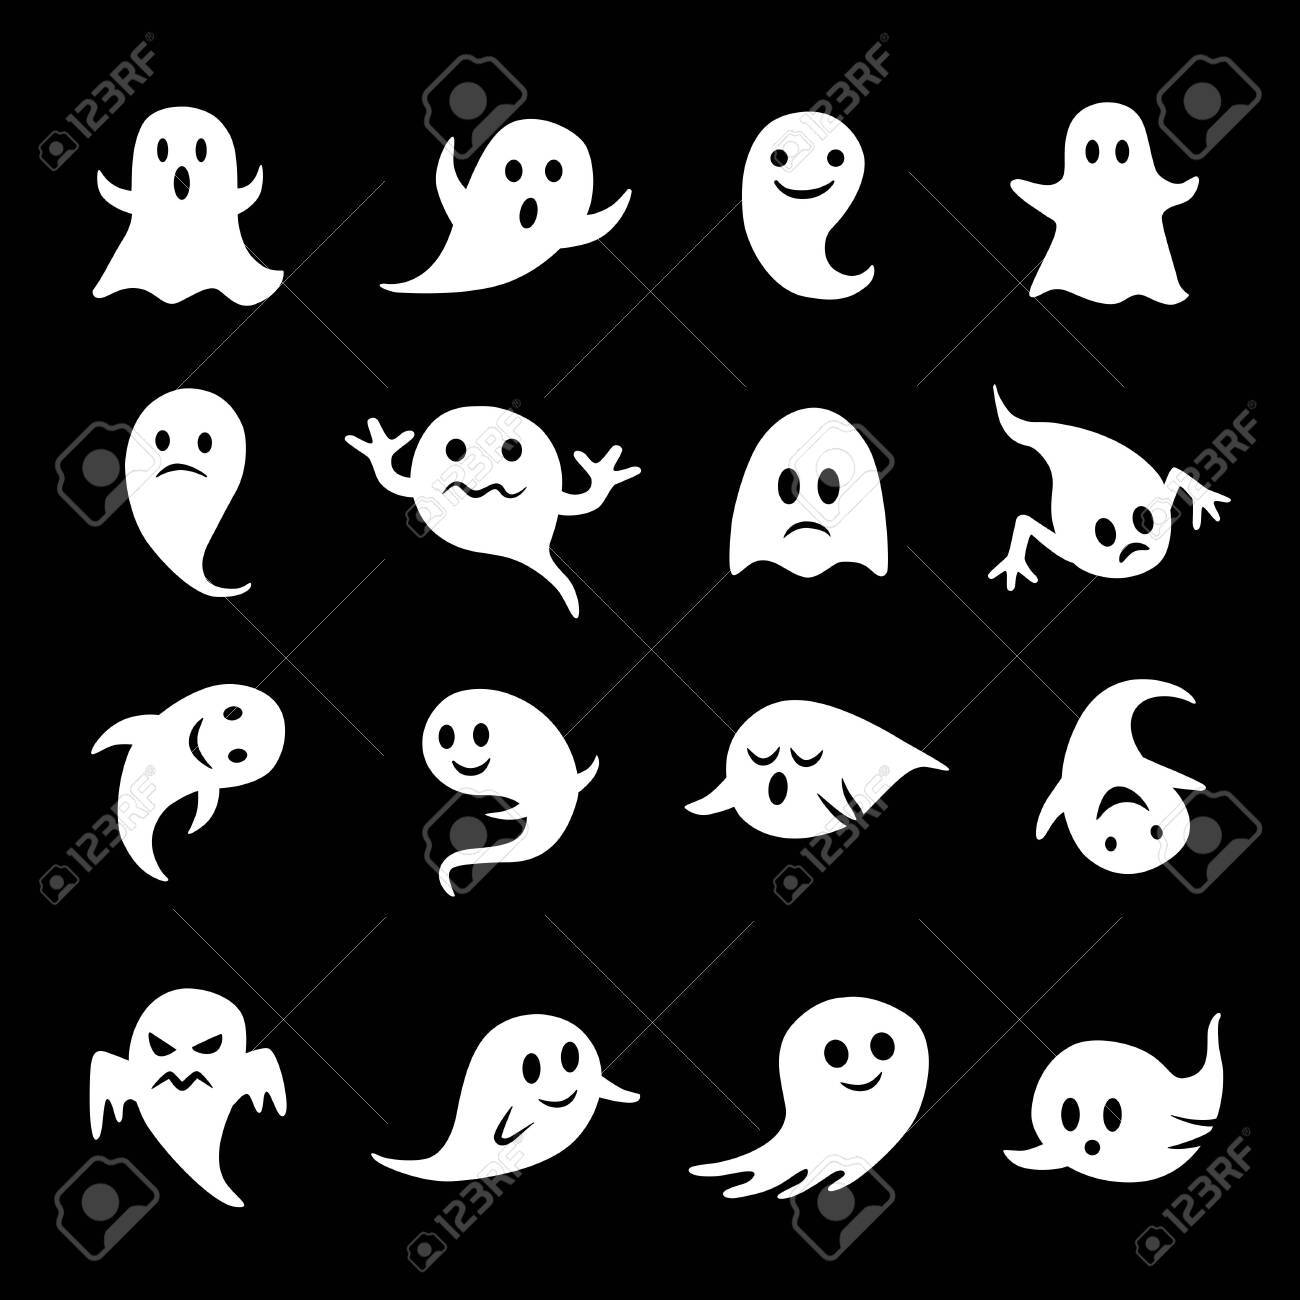 Collection of ghost icons on black - 141941204